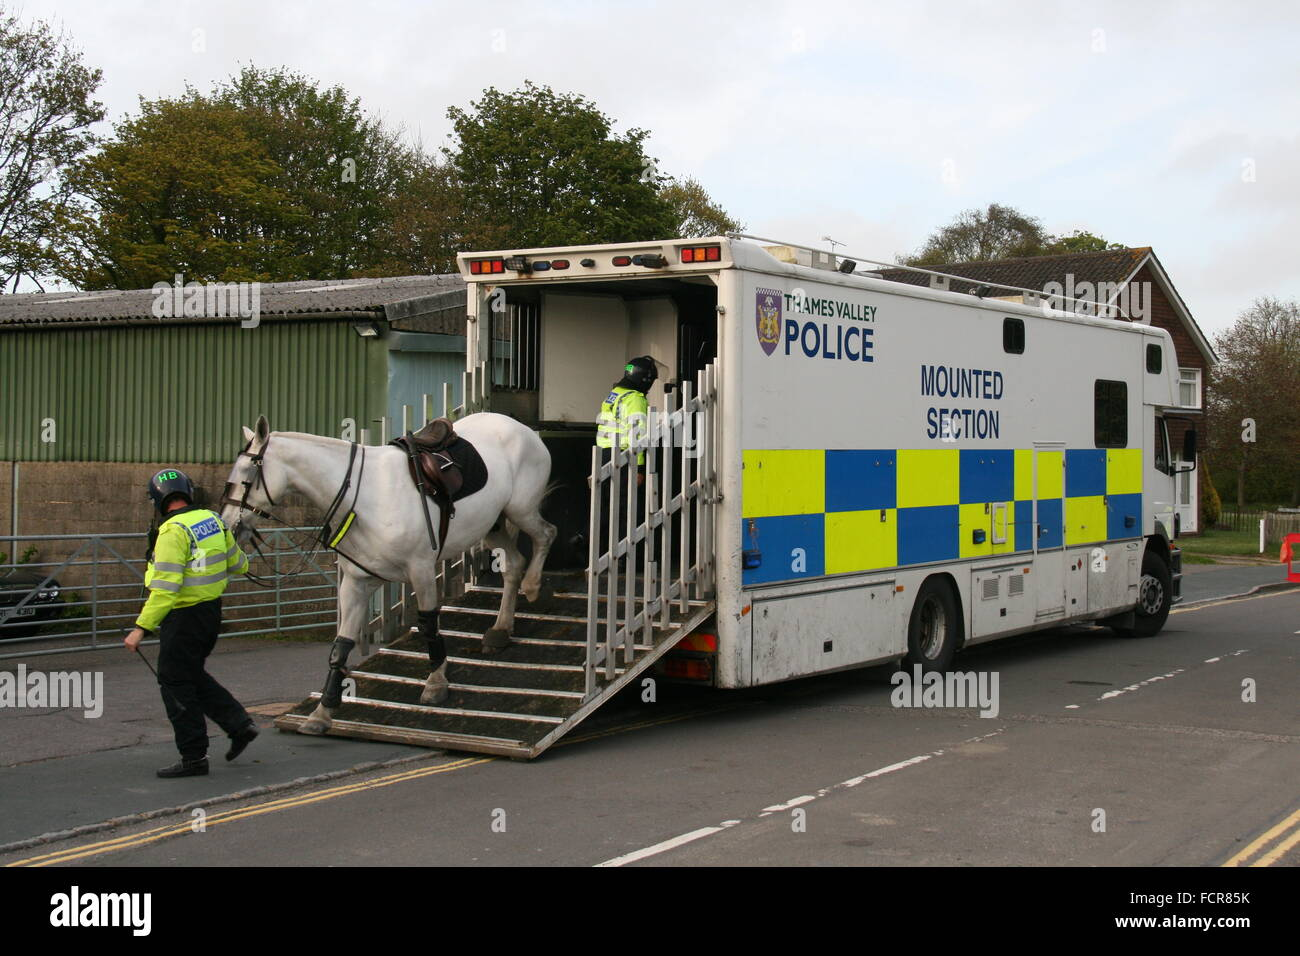 THAMES VALLEY POLICE MOUNTED SECTION HORSE BOX TRUCK WITH HORSE BEING TAKEN OUT OF VEHICLE BY A POLICE OFFICER - Stock Image